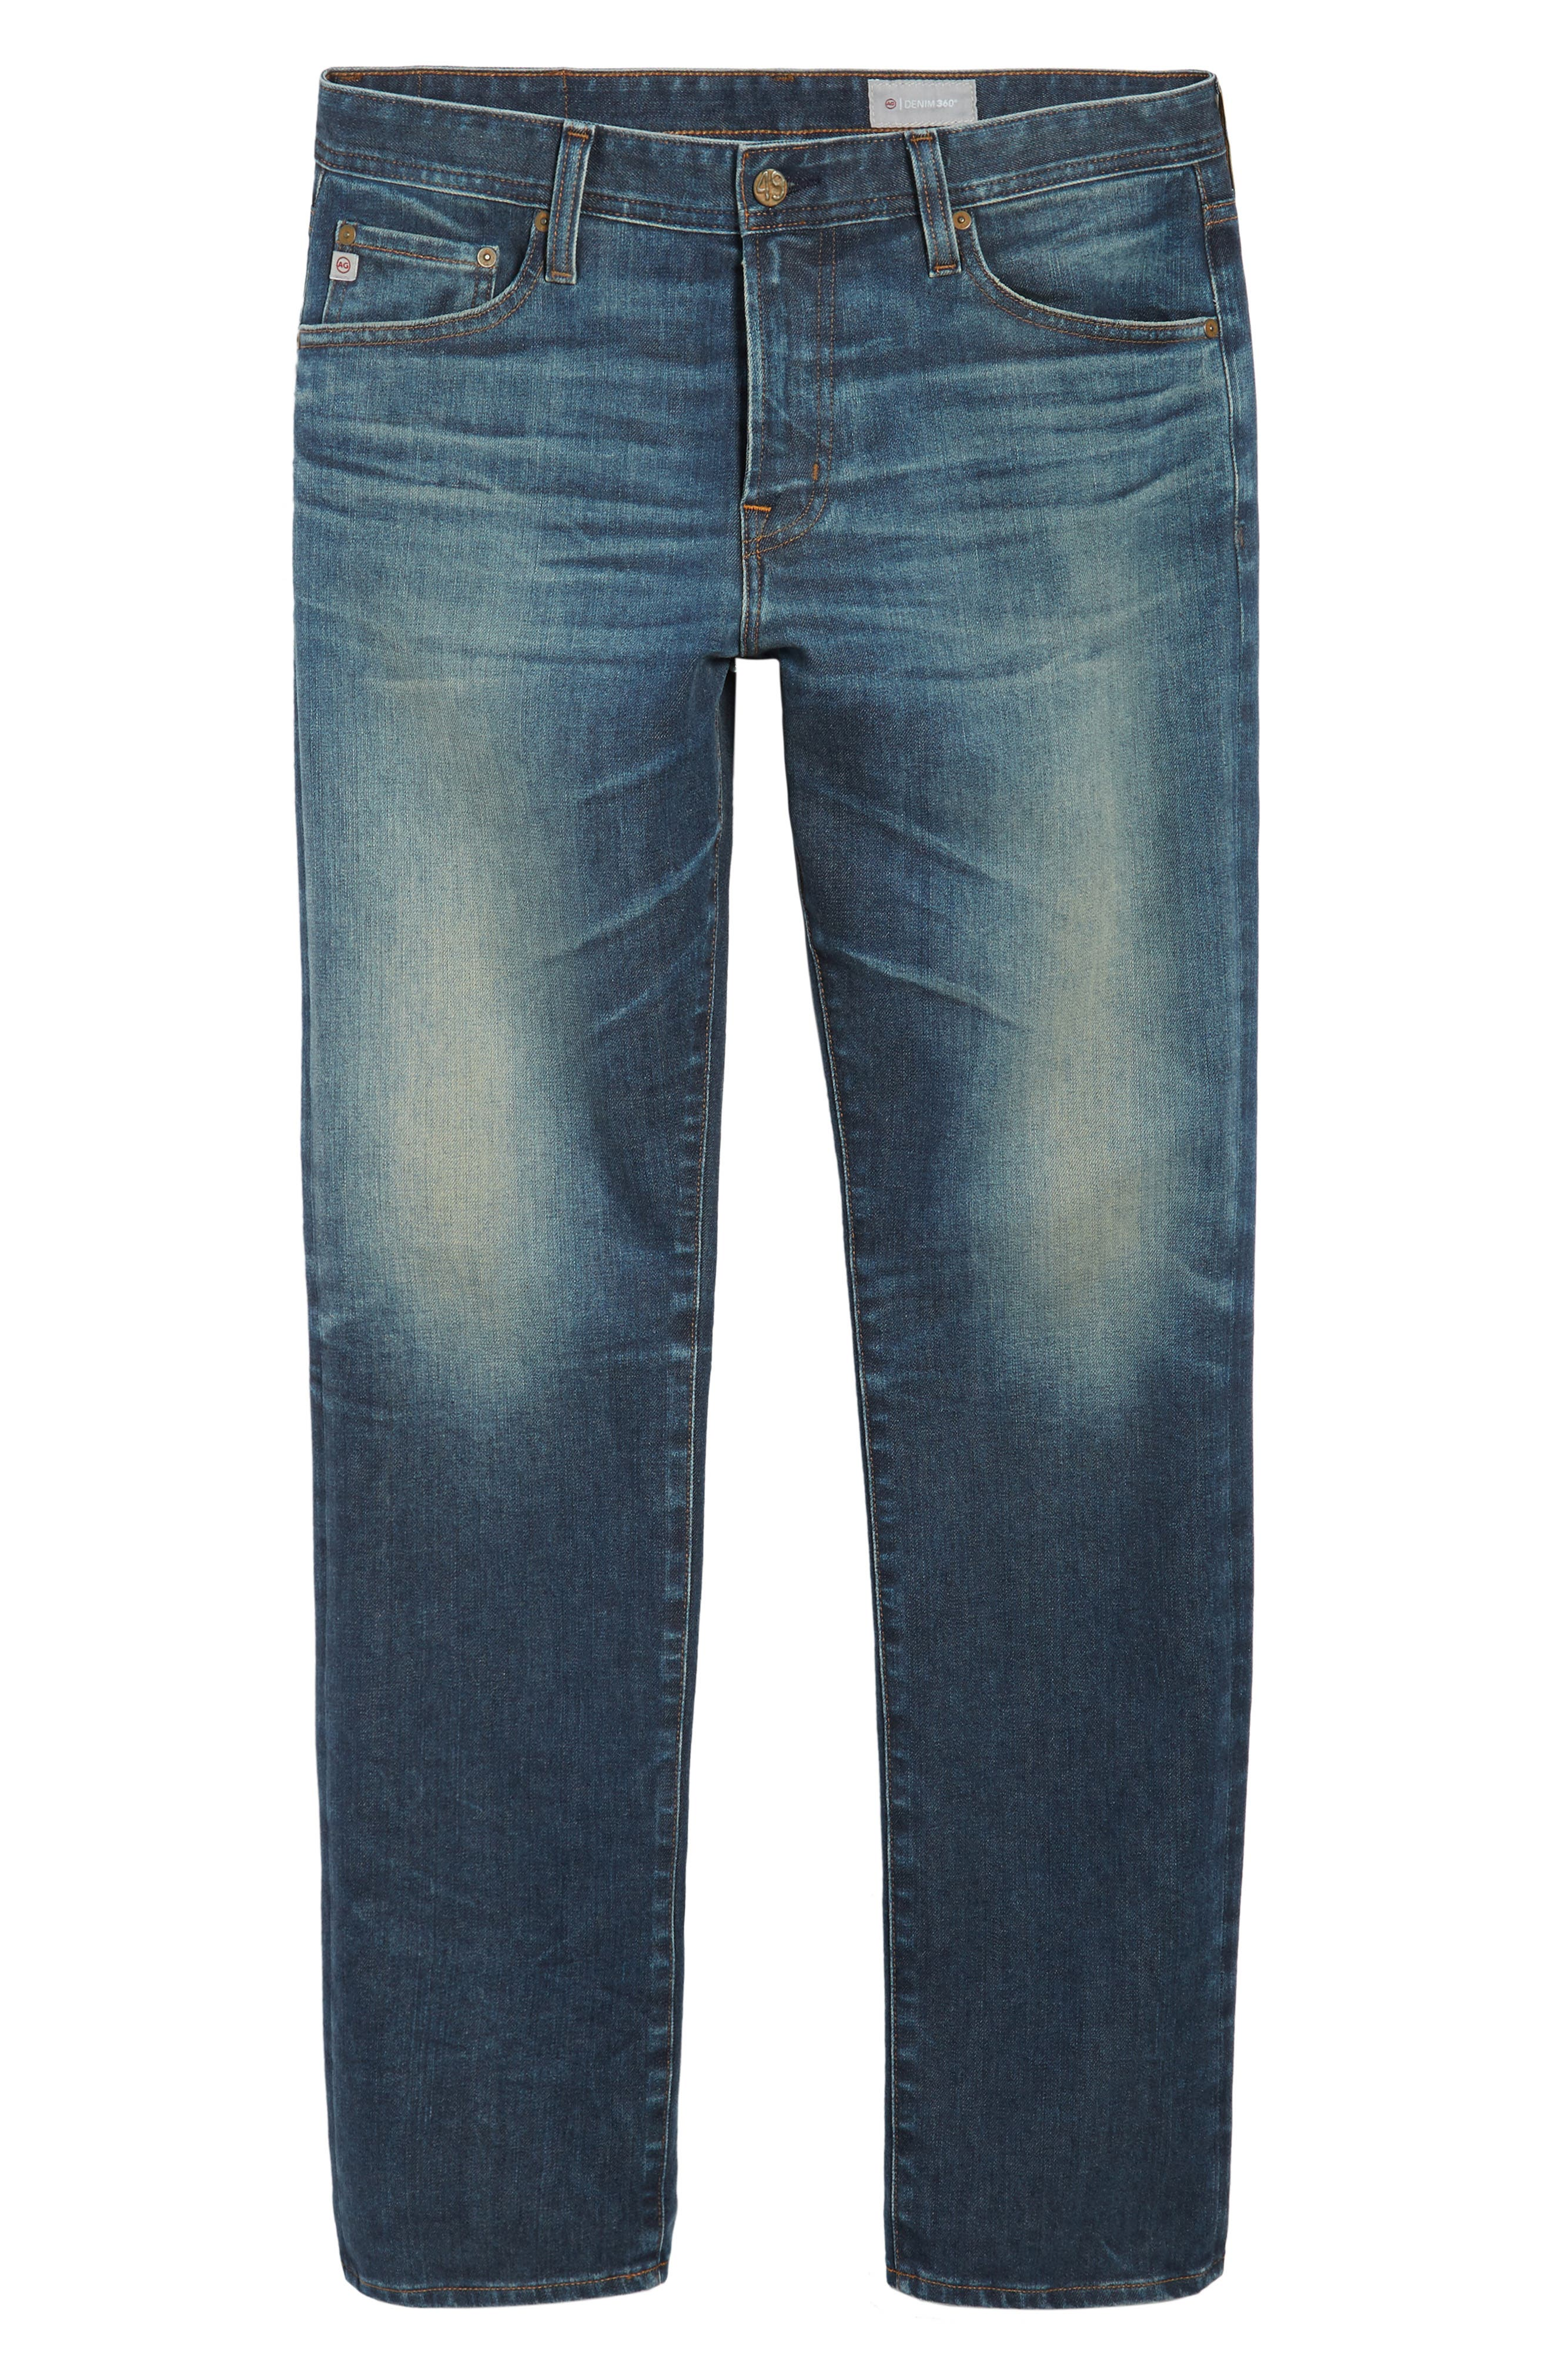 Everett Slim Straight Leg Jeans,                             Alternate thumbnail 6, color,